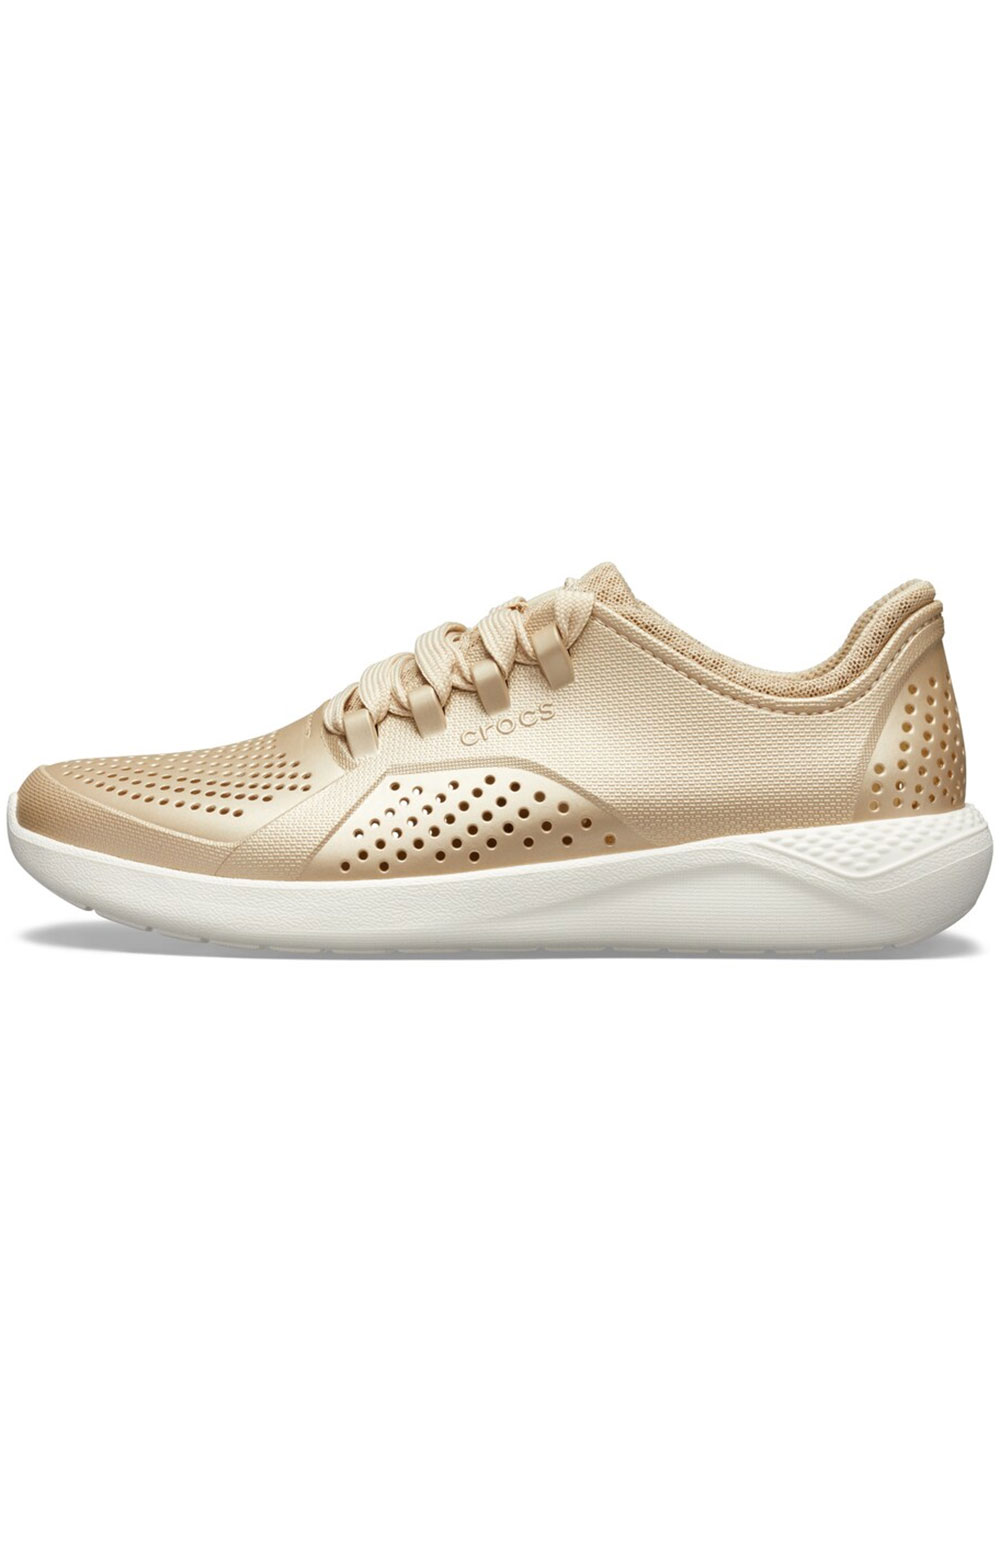 LiteRide Pacer Shoes - Metallic Champagne  4